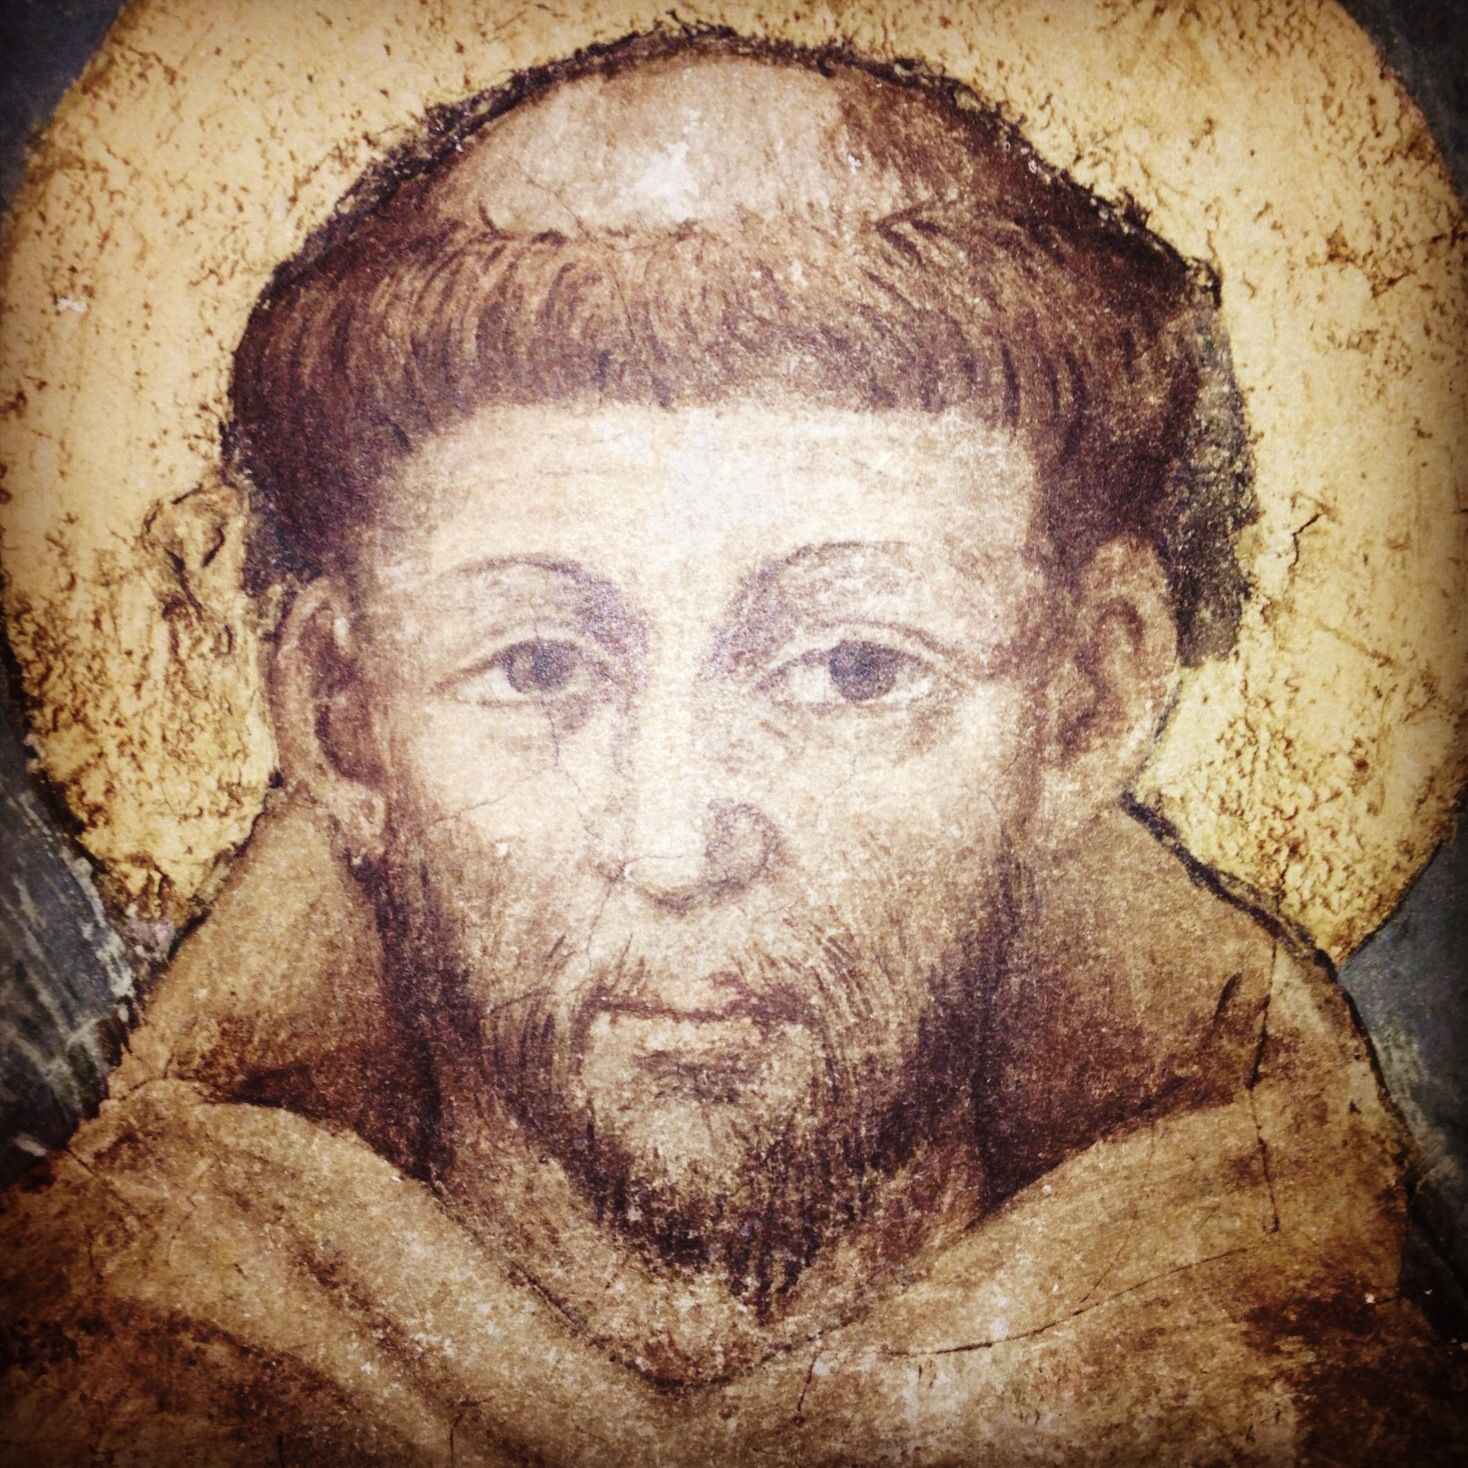 St. Francis of Assisi, pray for us